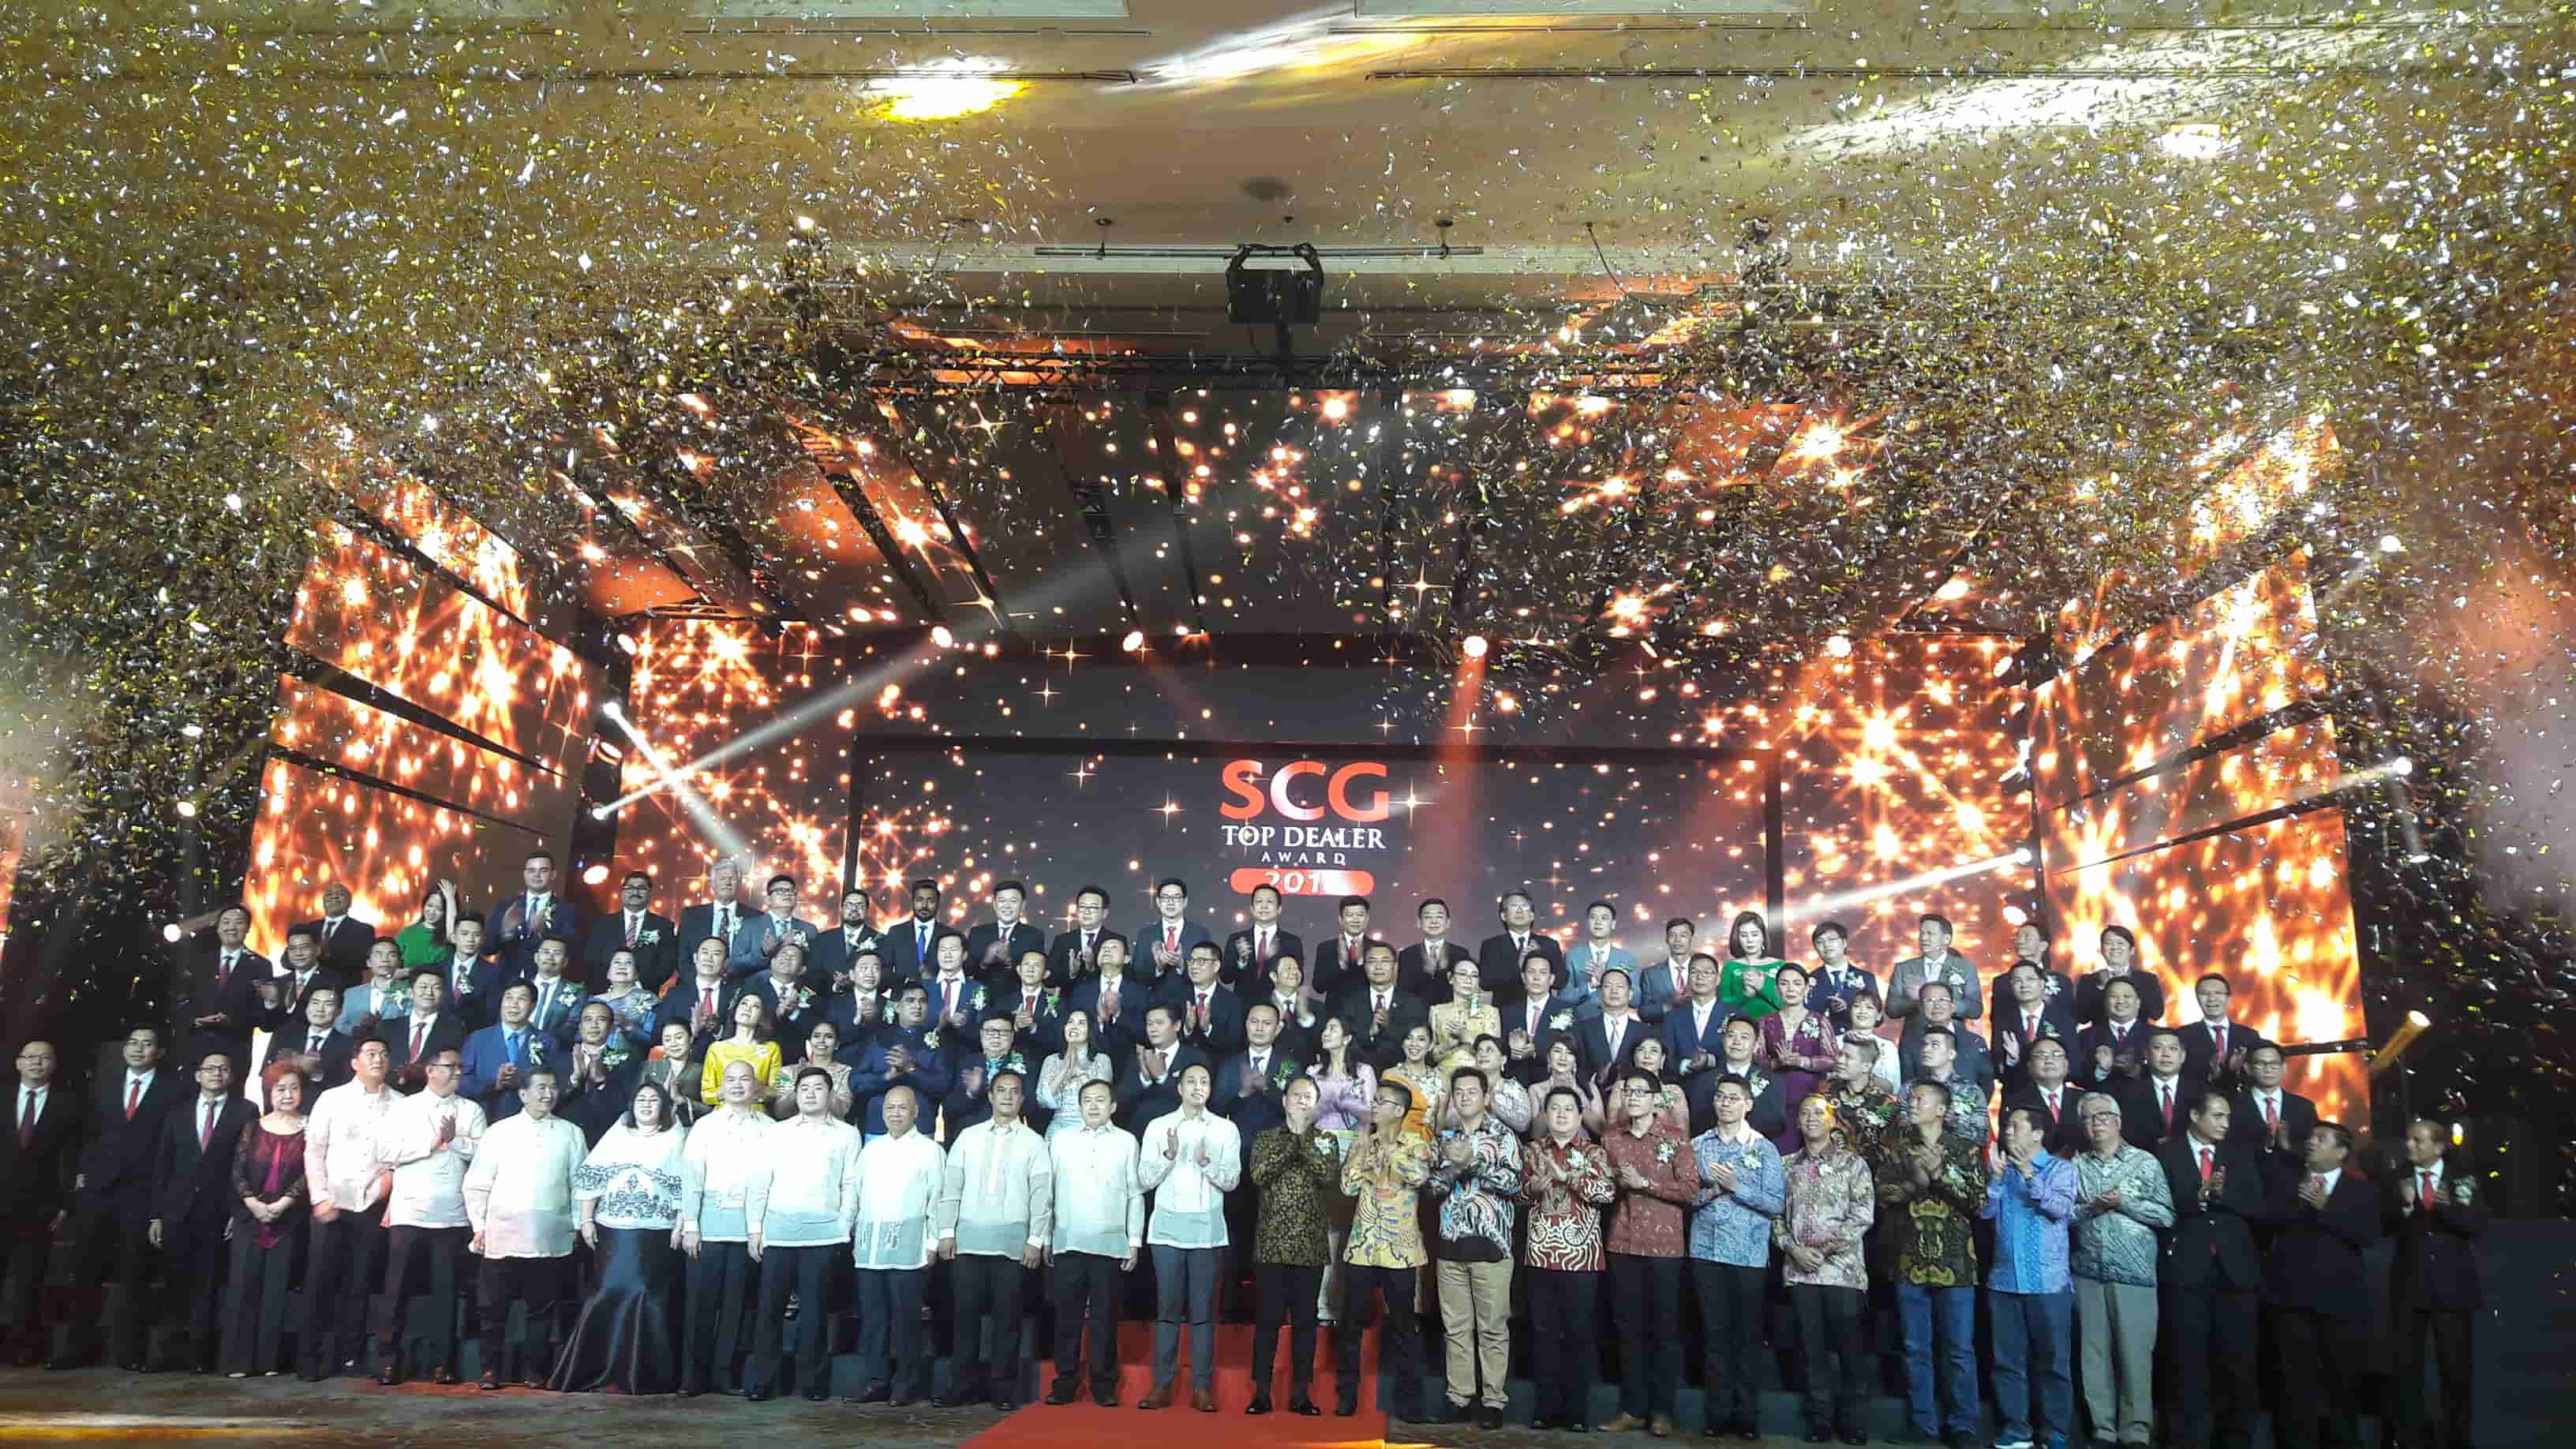 SCG Top dealer event 2018